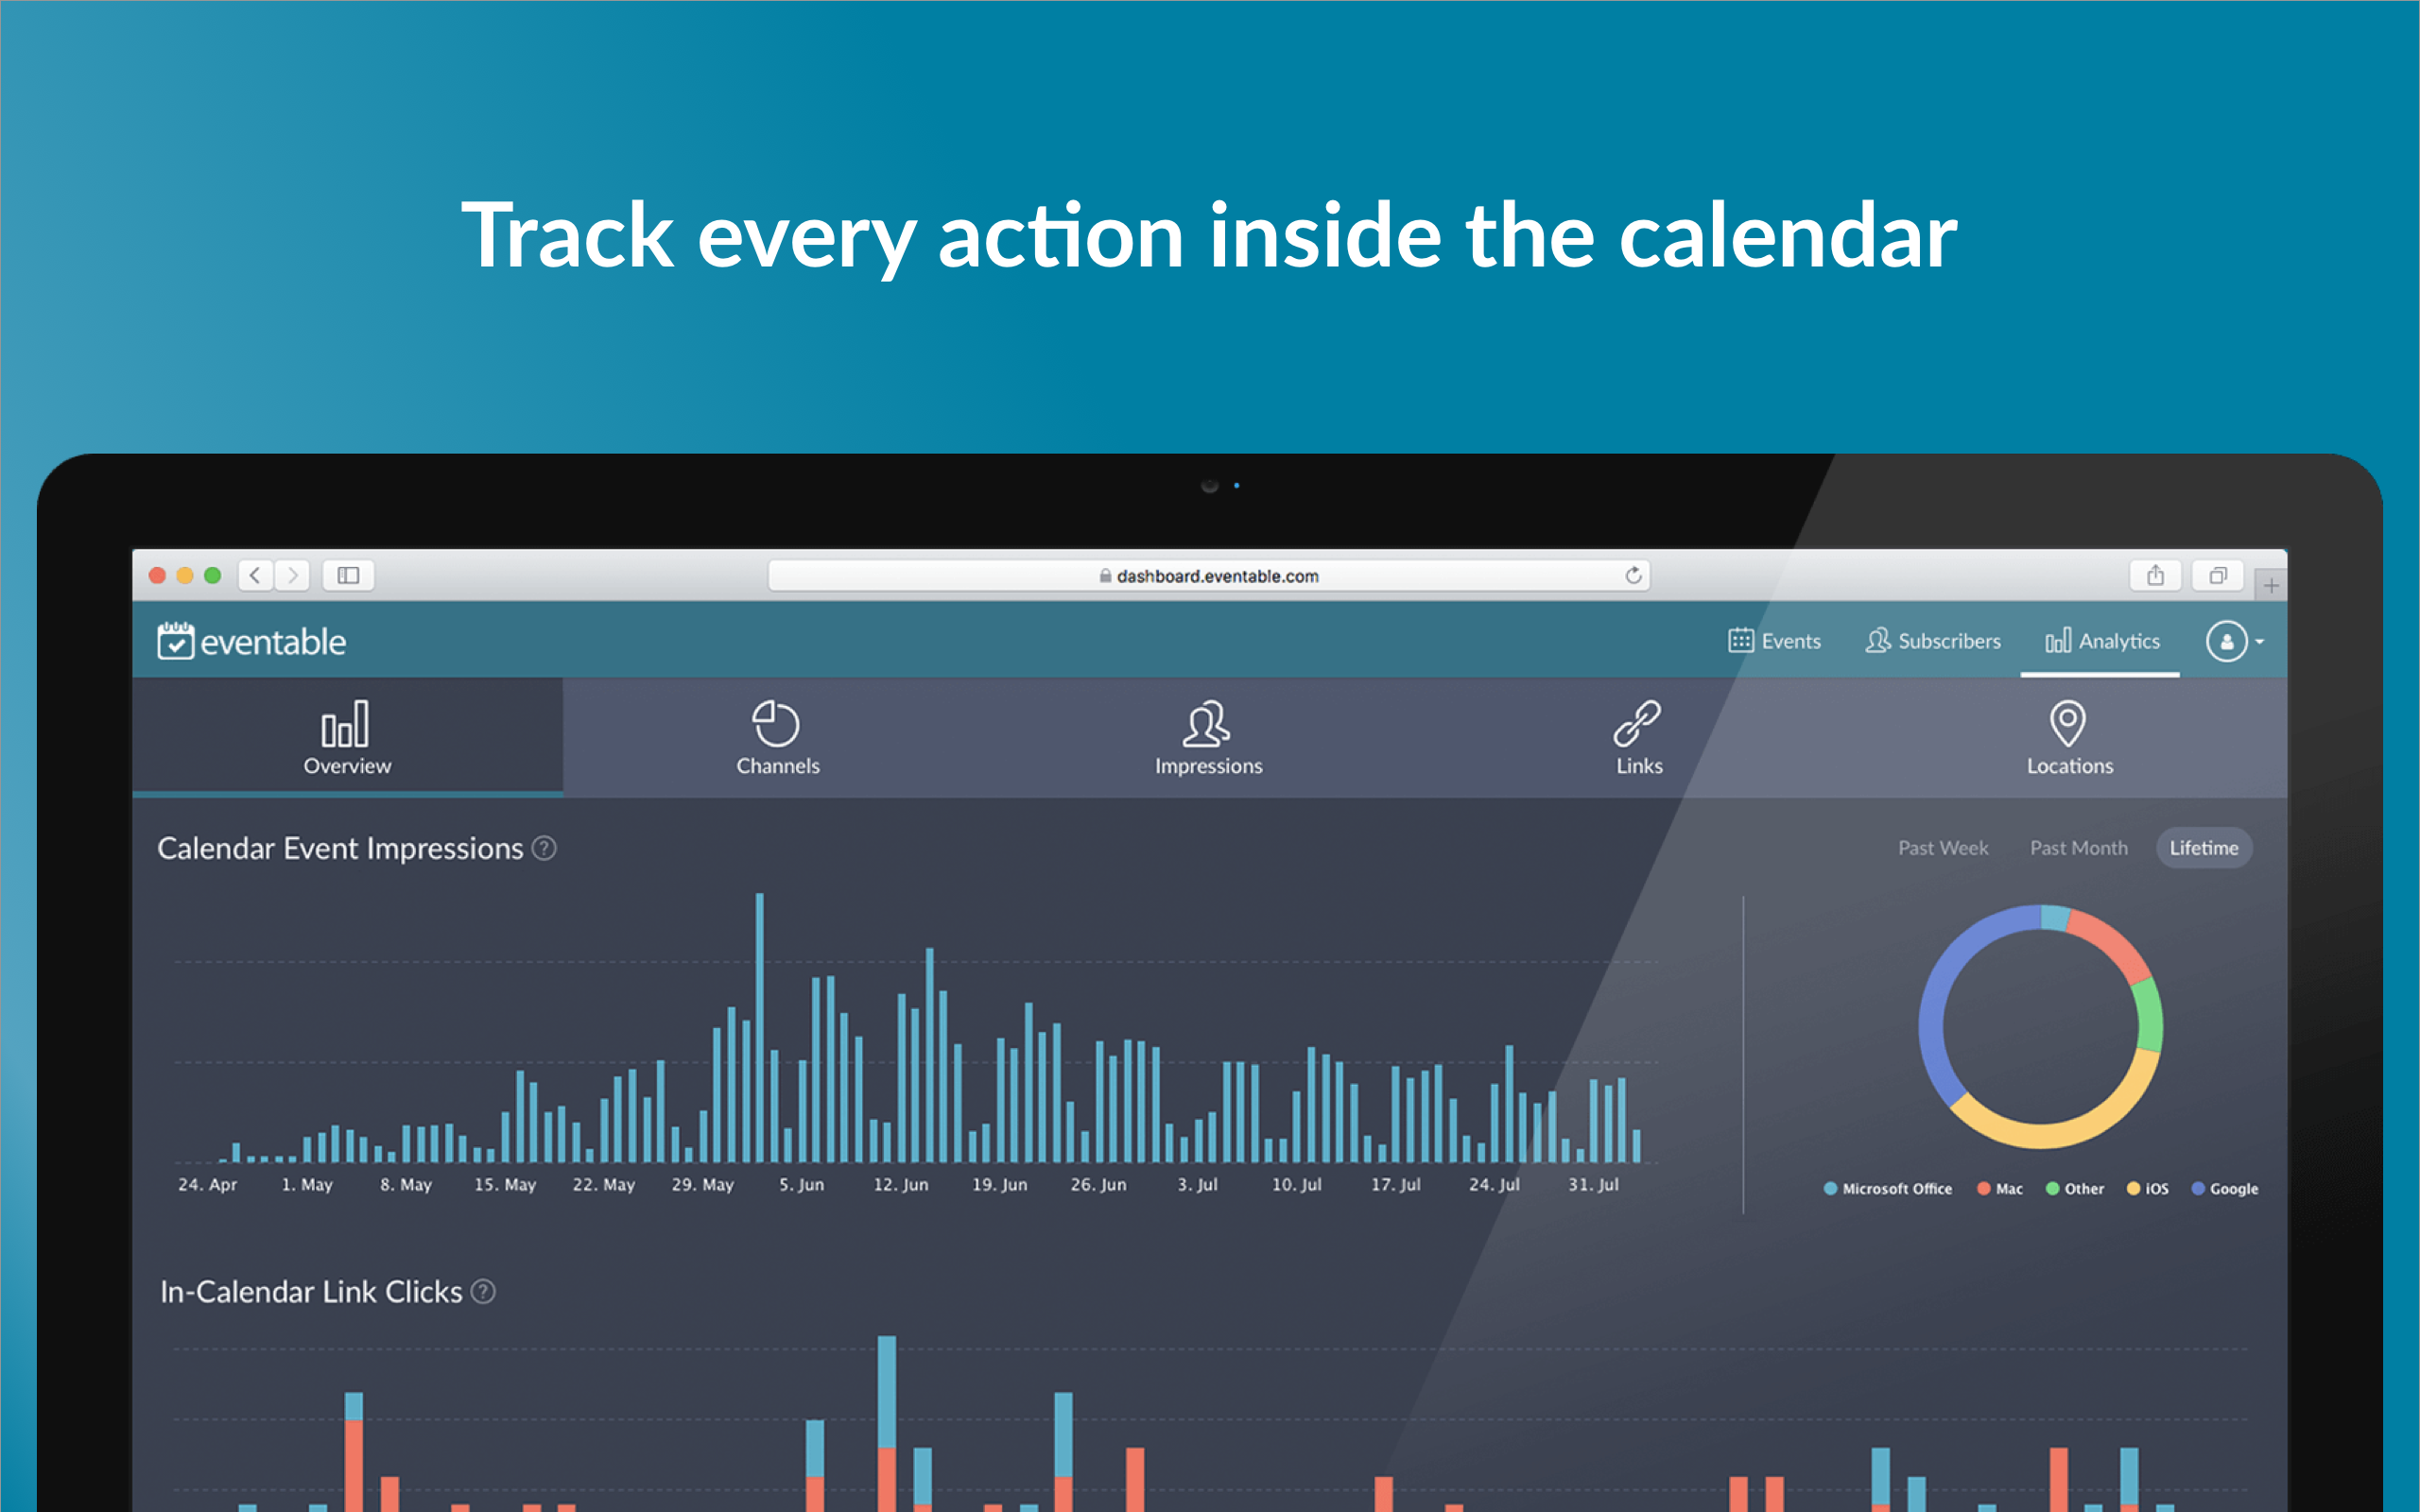 Eventable Demo - Track every action inside the calendar